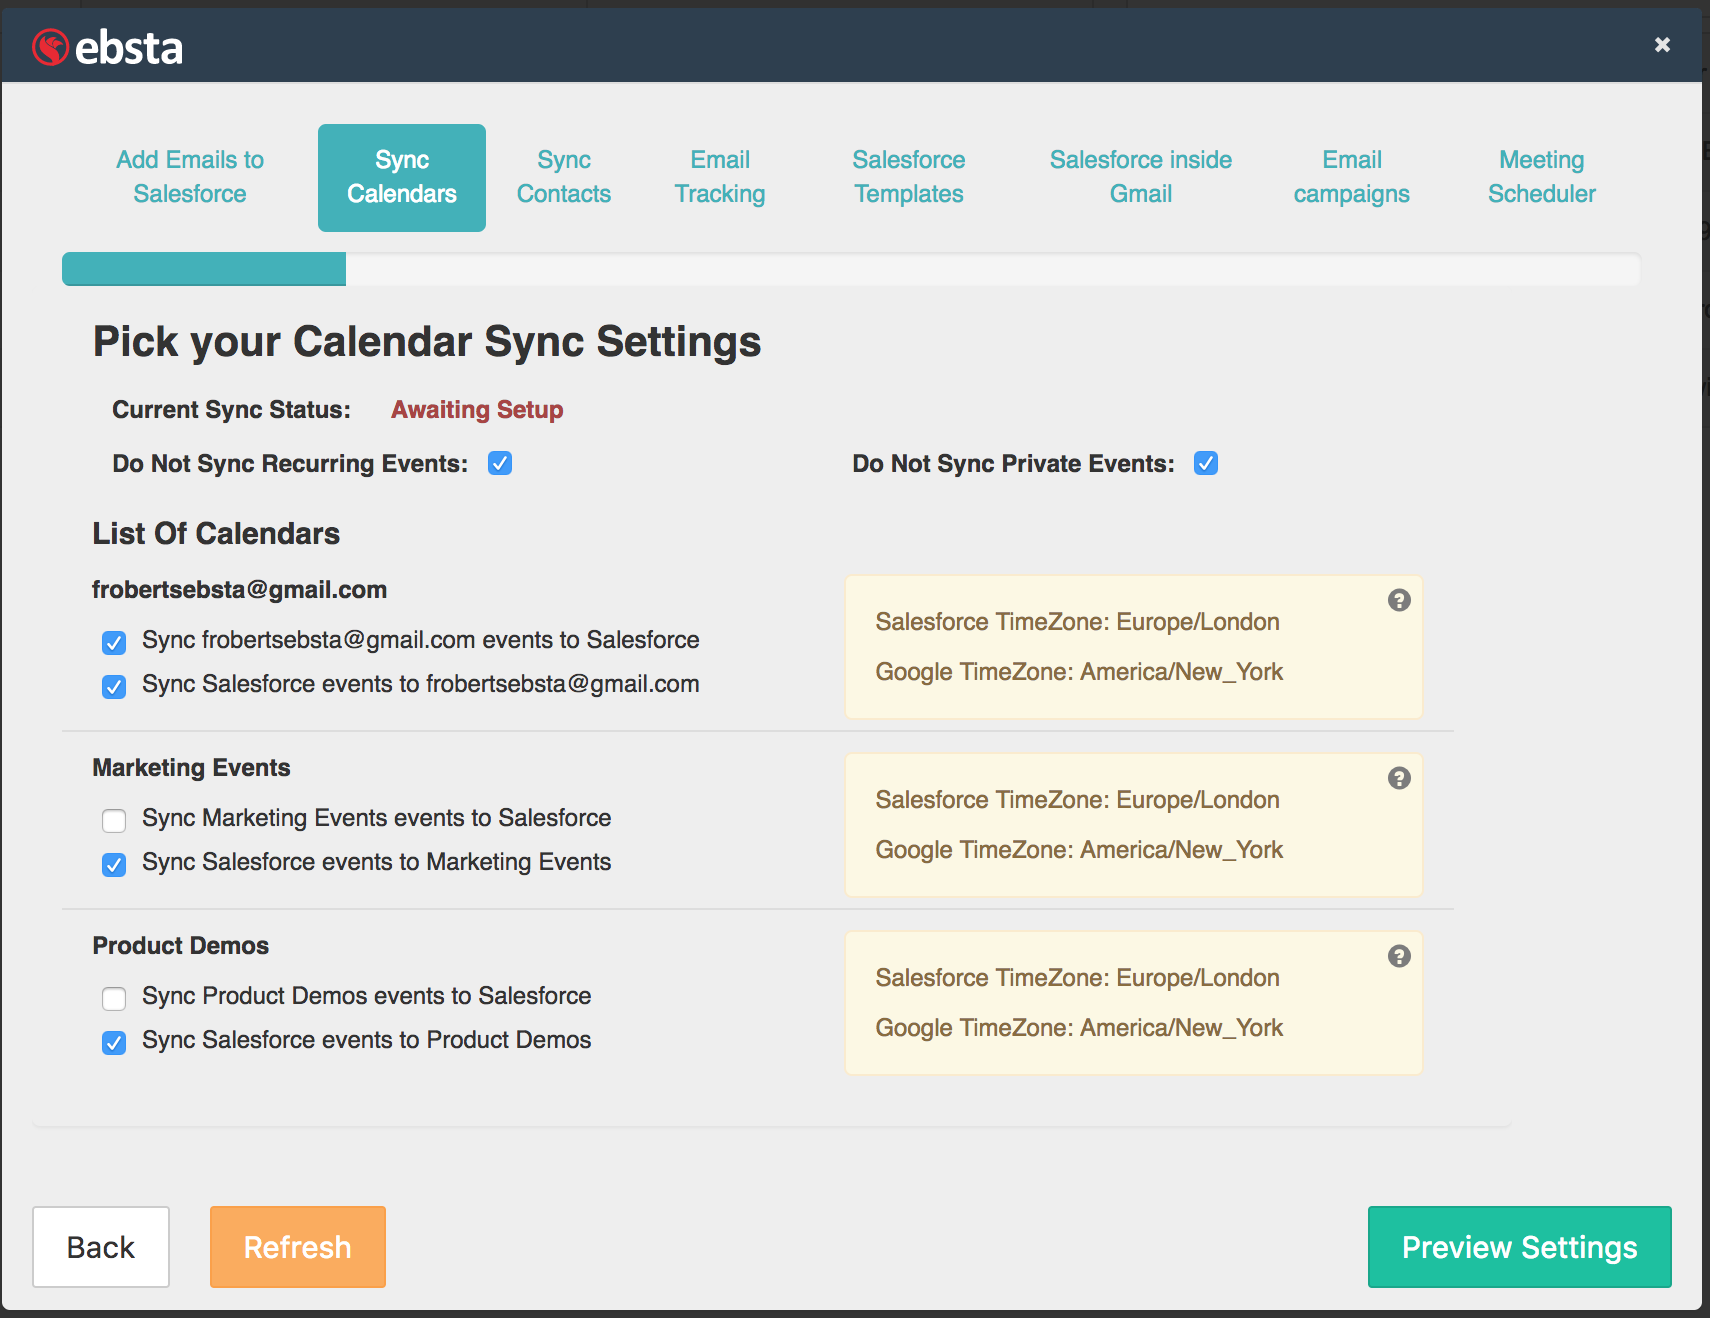 Ebsta's Calendar Set up screenshot showing multiple Salesforce calendars set to sync to Google